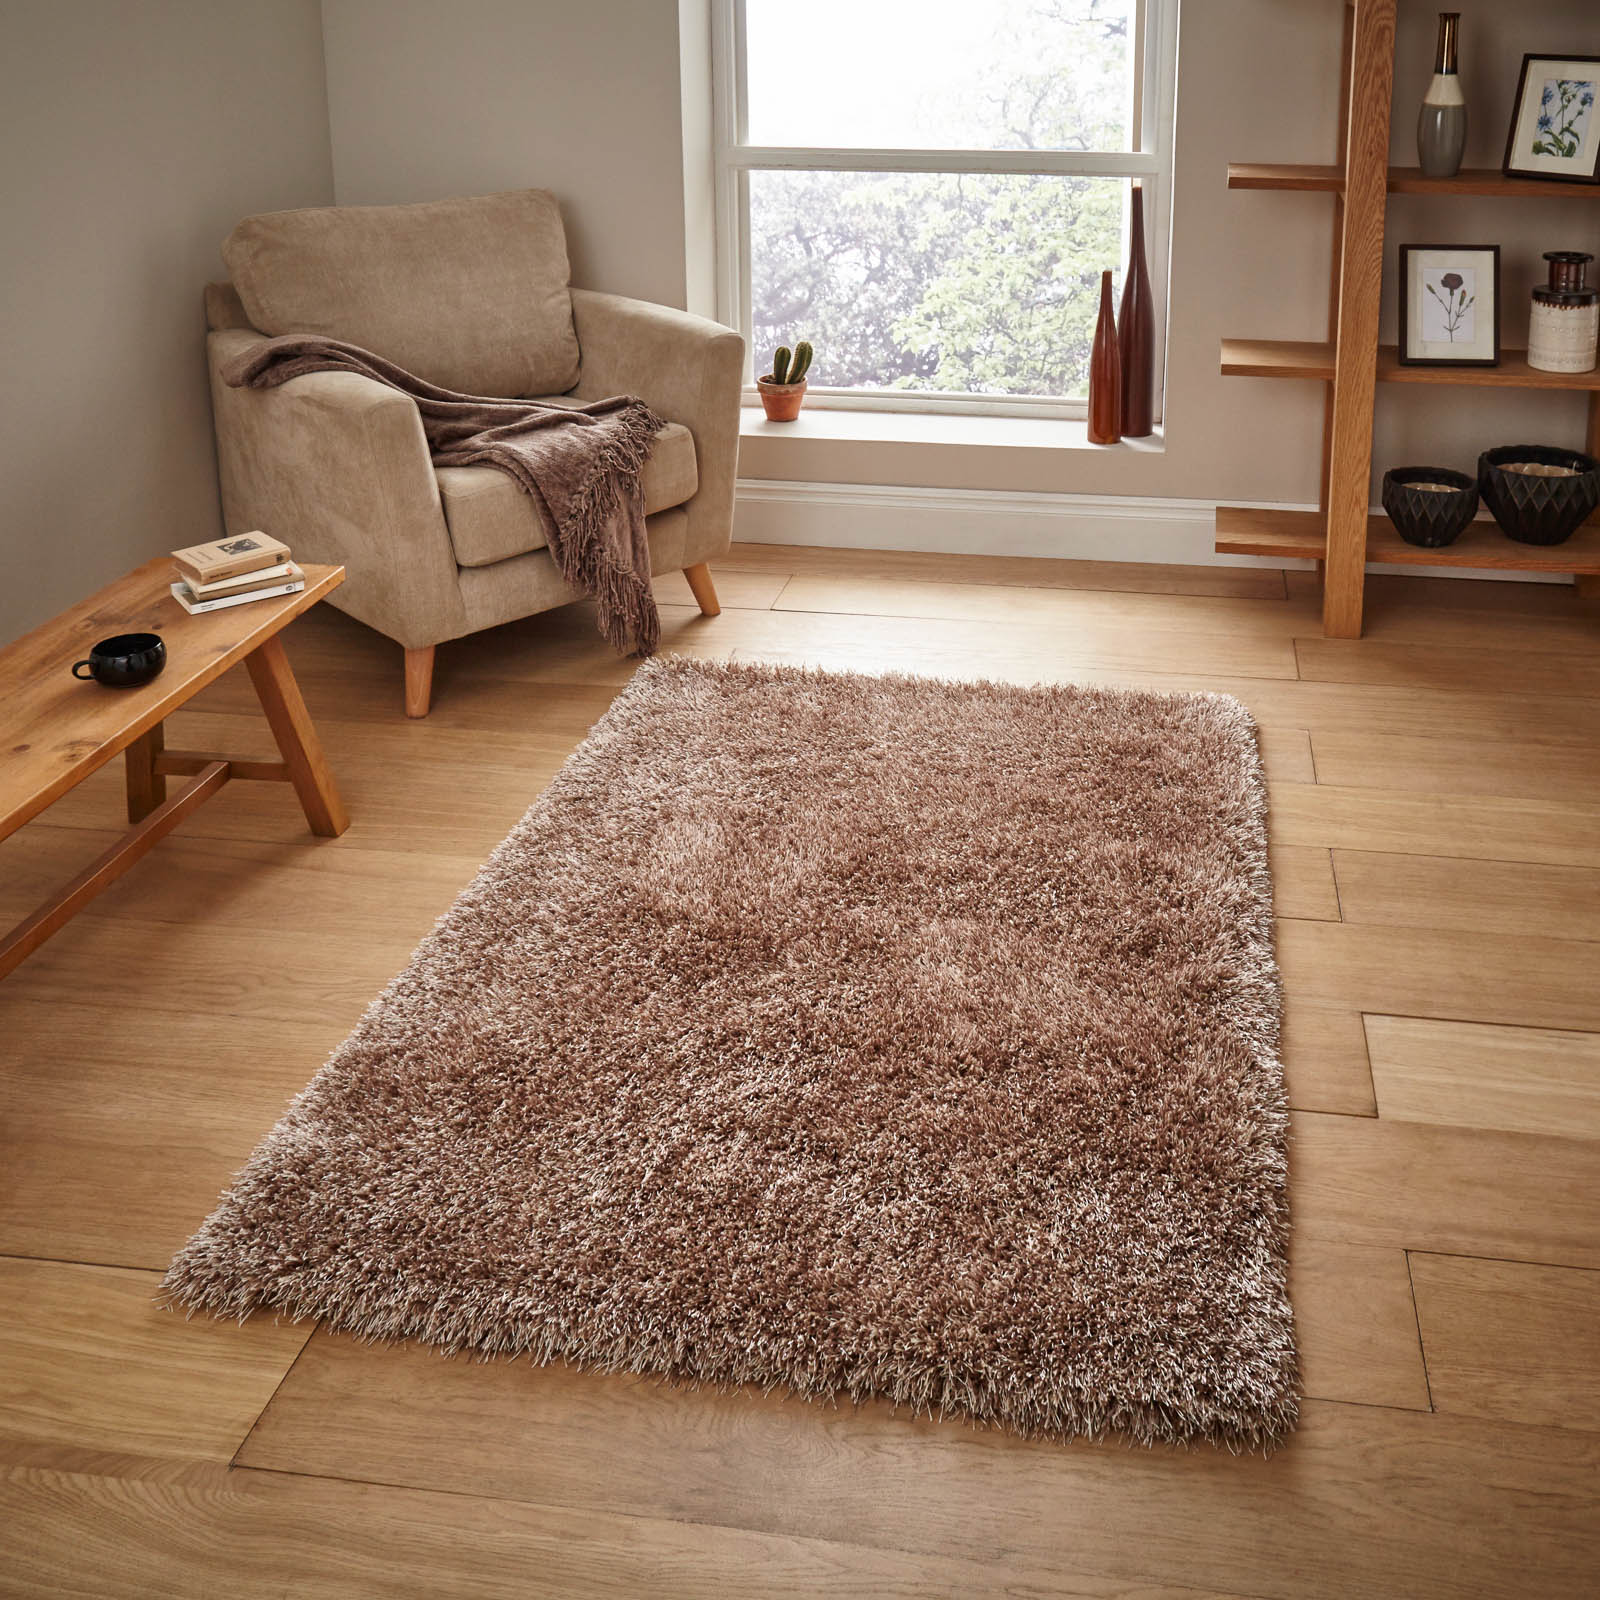 Monte Carlo Hand Made Shaggy Rugs in Beige